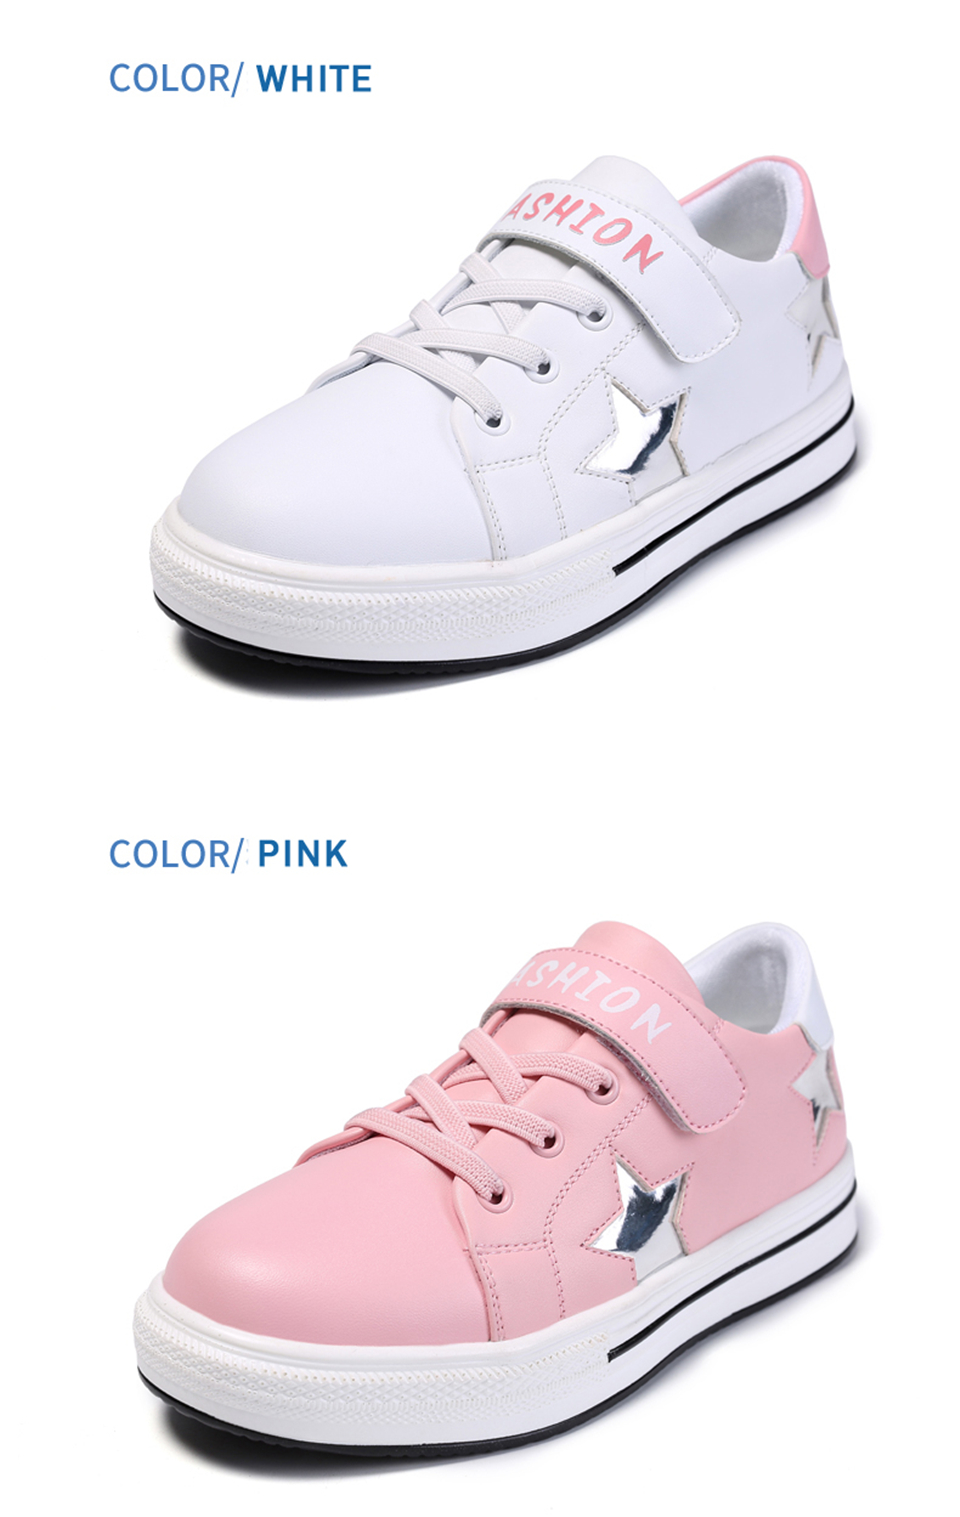 children/'s shoes  casual shoes the girls sneakers  European shoe size:29-30